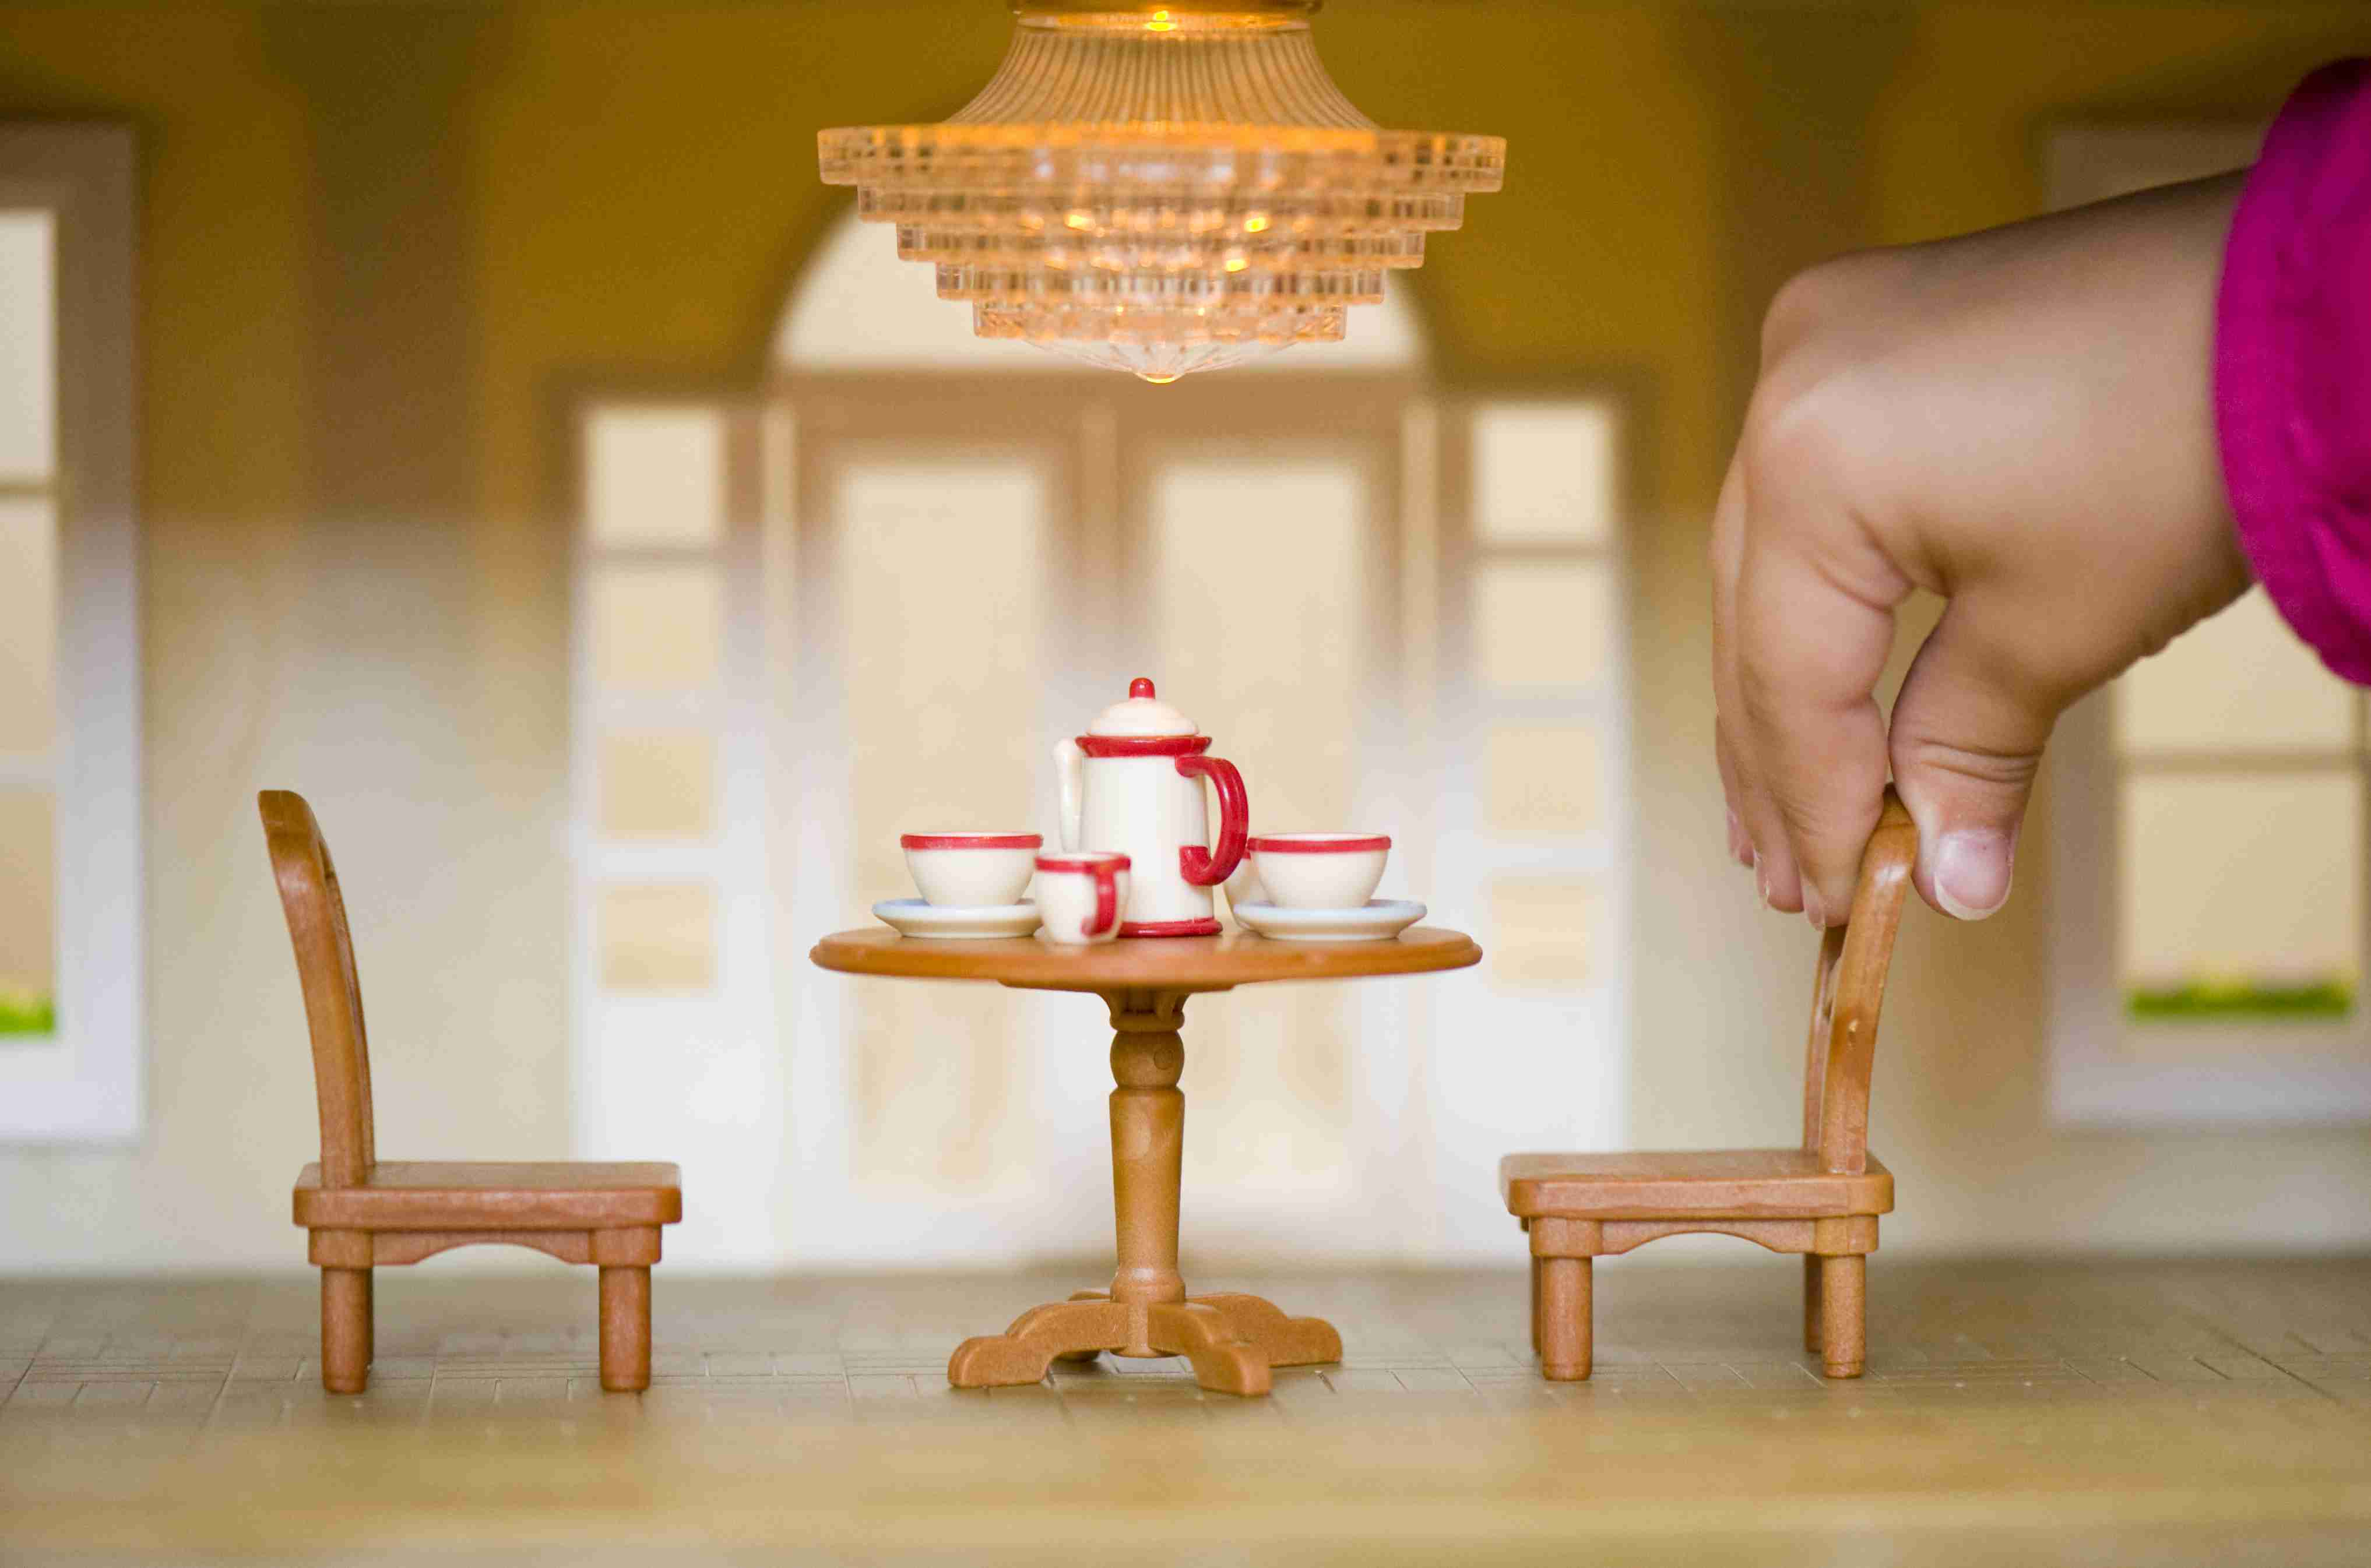 Child's hand arranging chair and table with tea set in a dollhouse.